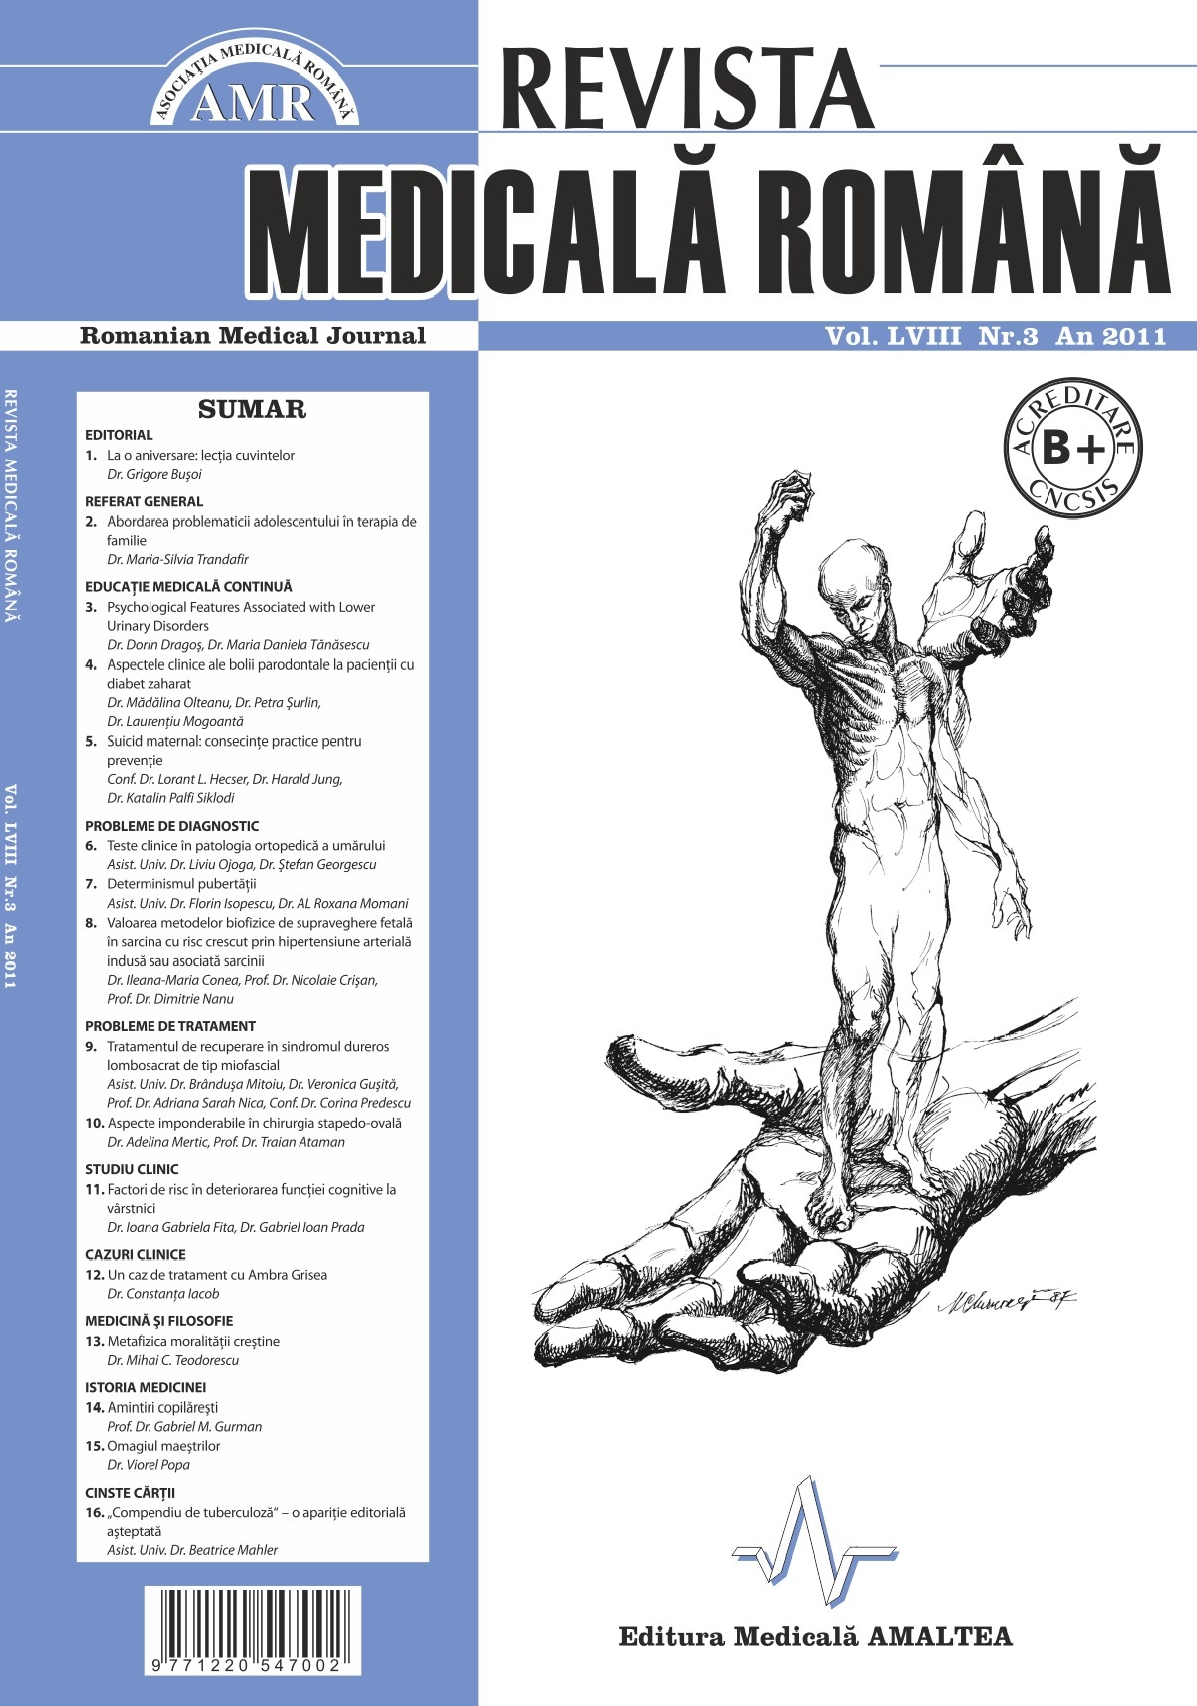 REVISTA MEDICALA ROMANA - Romanian Medical Journal, Vol. LVIII, Nr. 3, An 2011